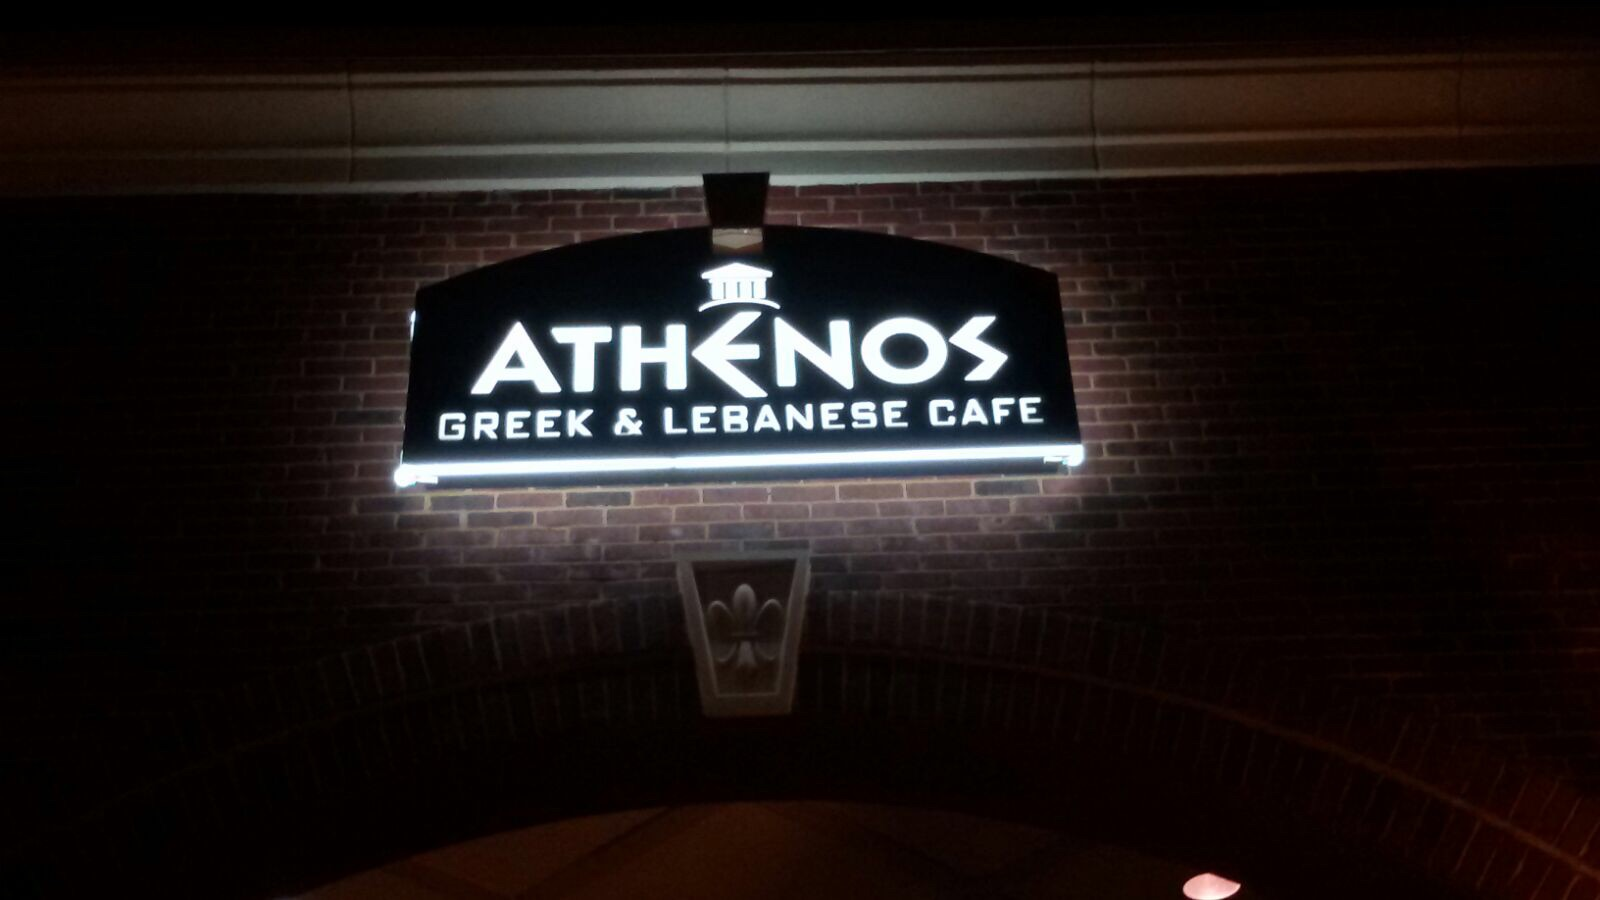 Athenos Greek & Lebanese Cafe Madison, MS